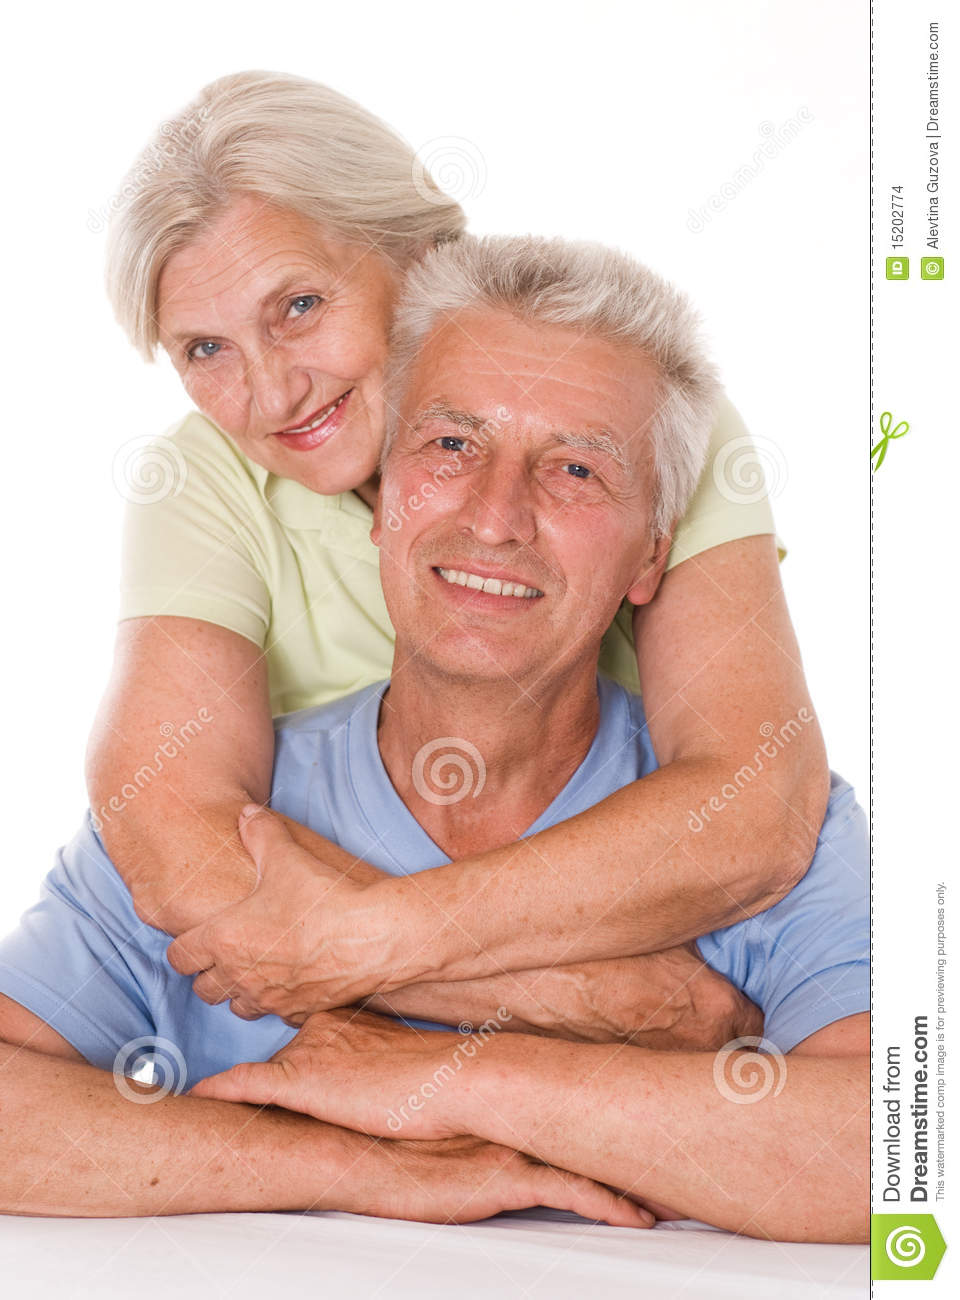 Happy elderly couple together on a white background Happy Elderly Couple